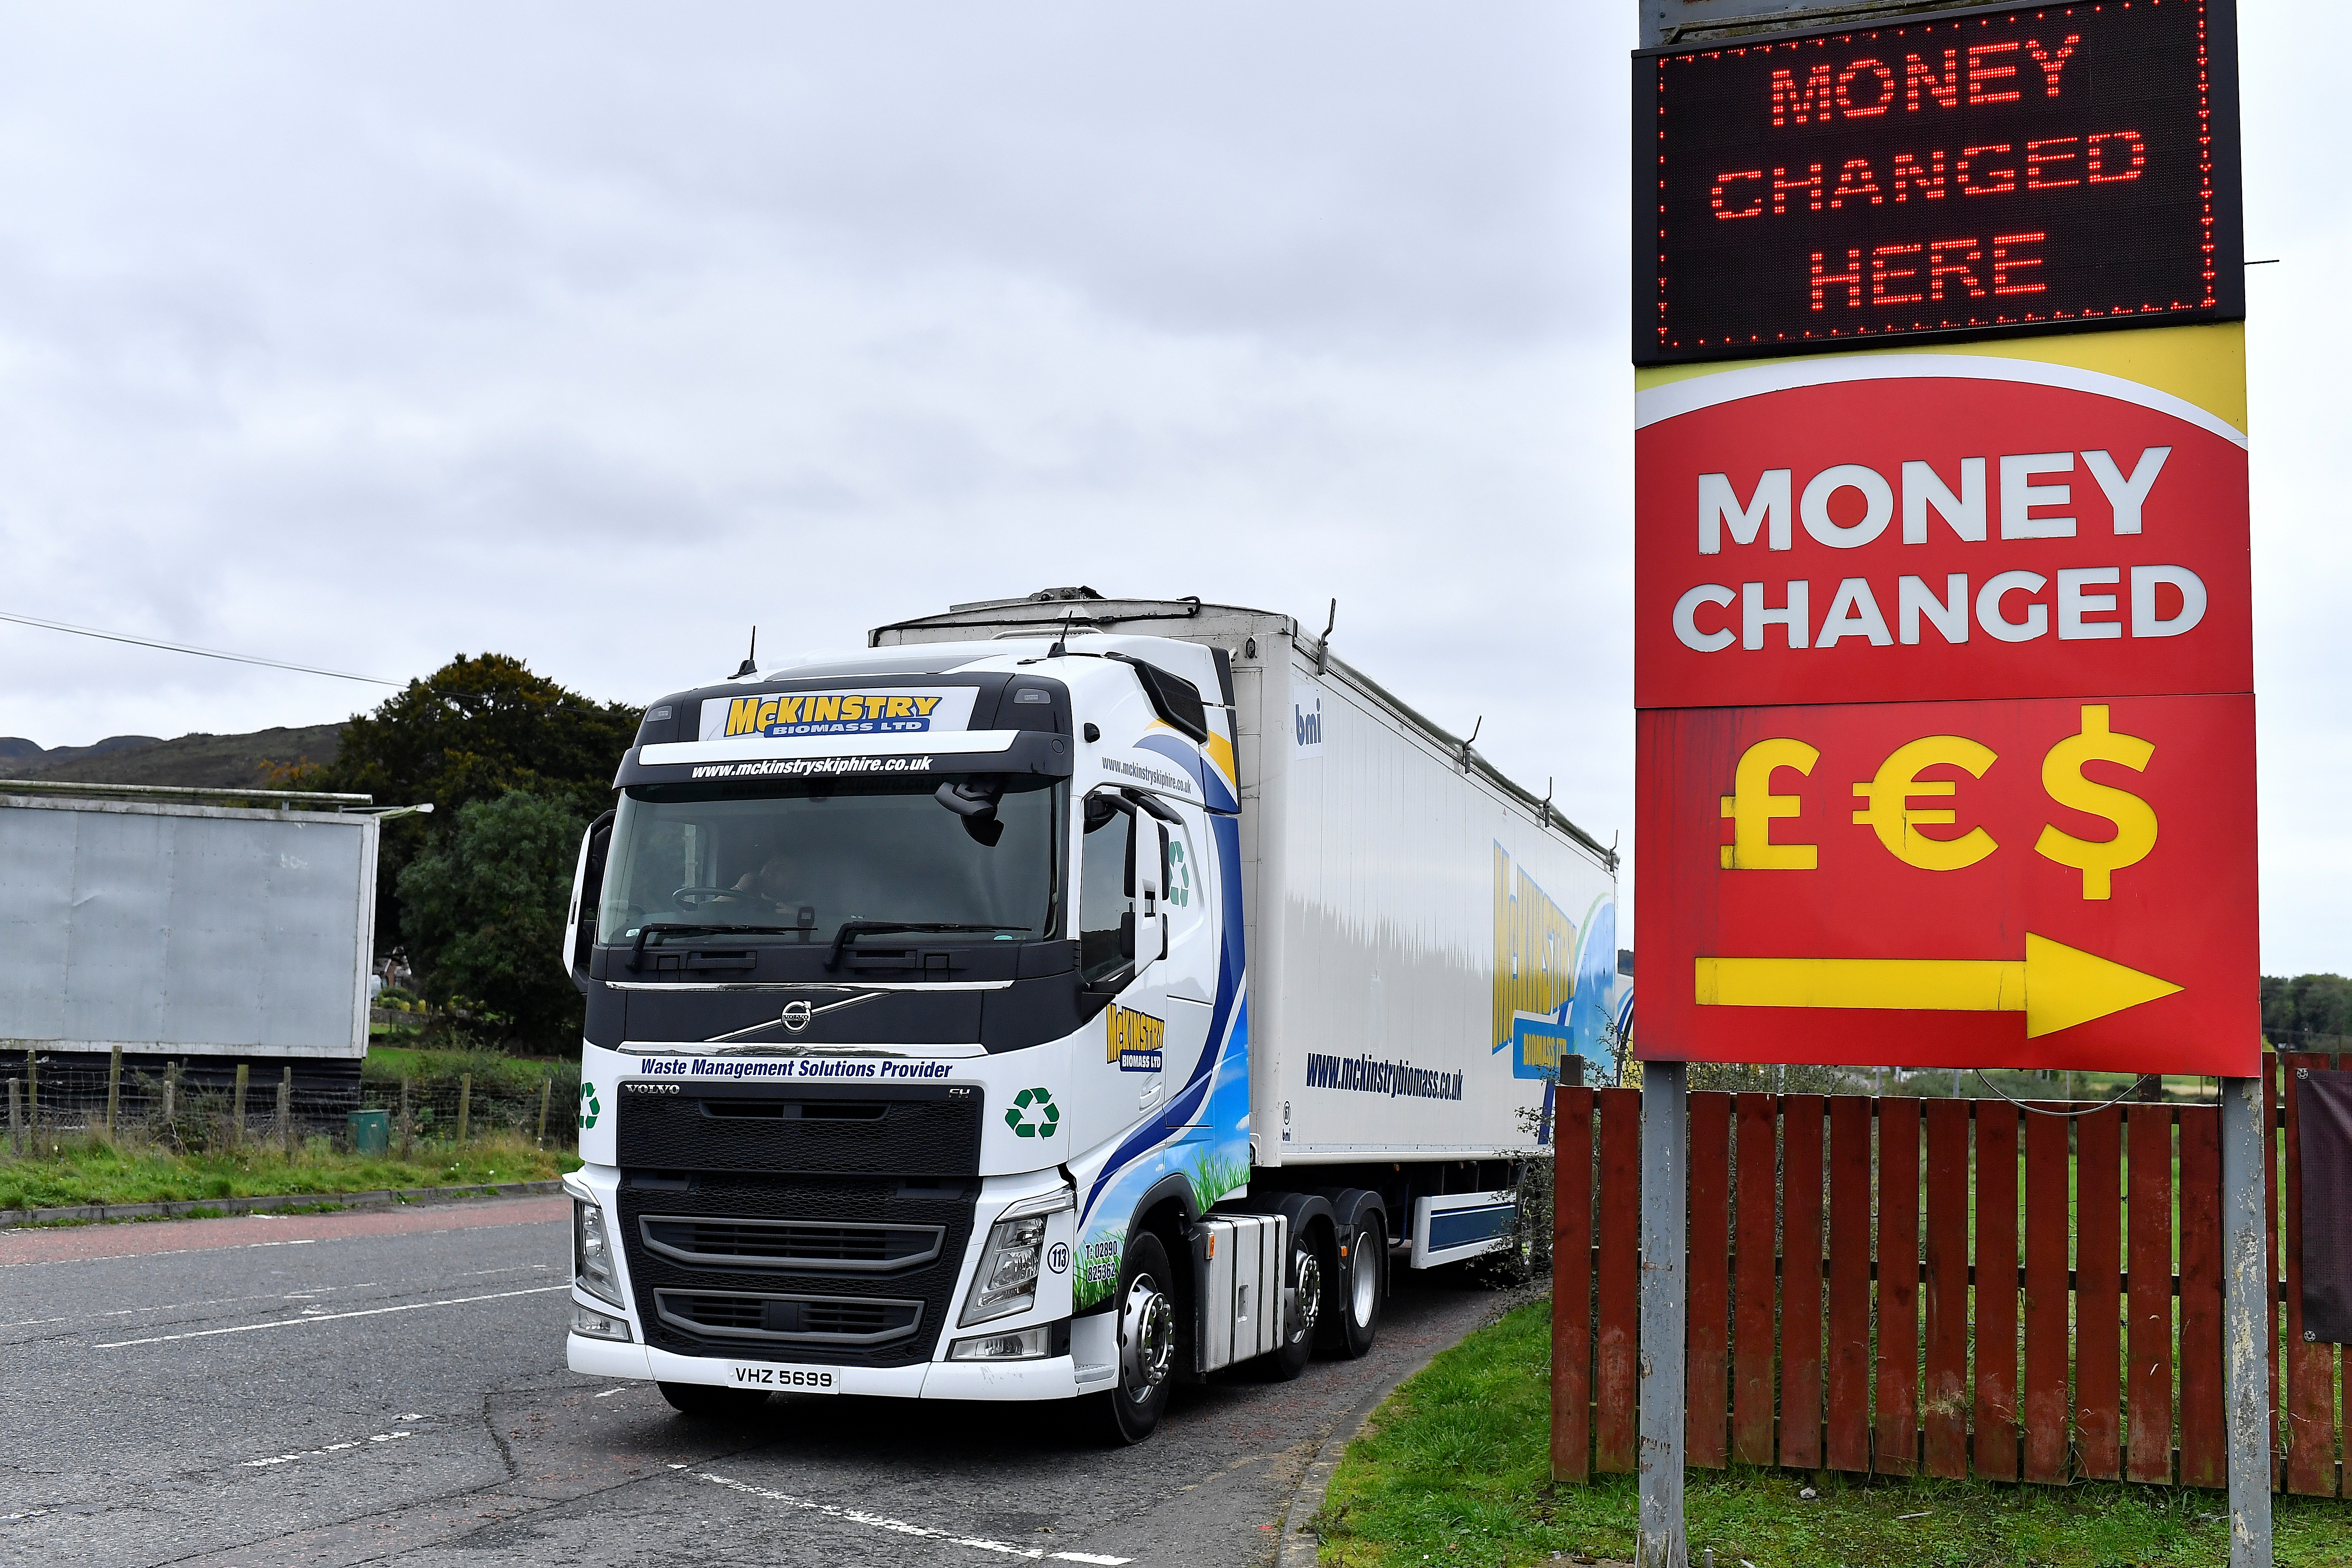 A truck parked beside a 'money changed' sign is seen on the border between Northern Ireland and the Republic of Ireland near Jonesborough, Northern Ireland, October 13, 2021. REUTERS/Clodagh Kilcoyne